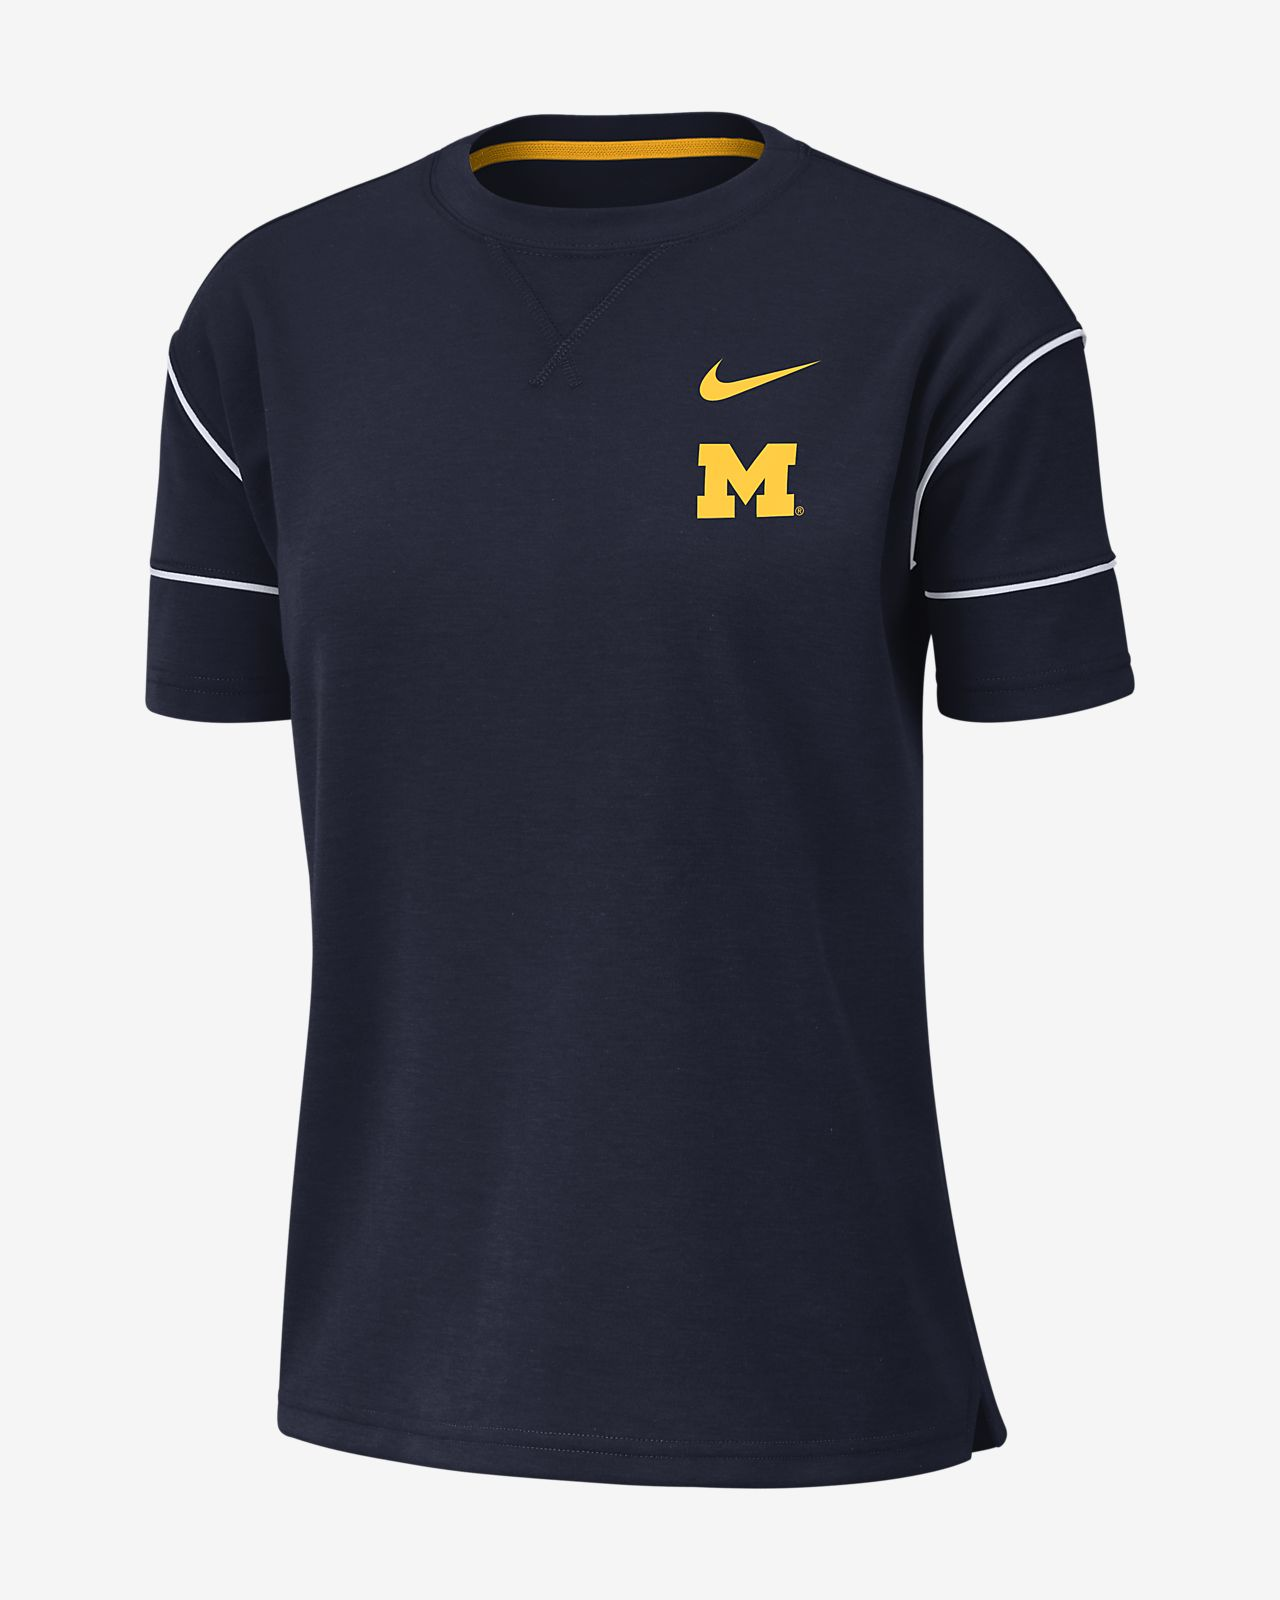 Nike College Breathe (Michigan) Women's Short-Sleeve Top